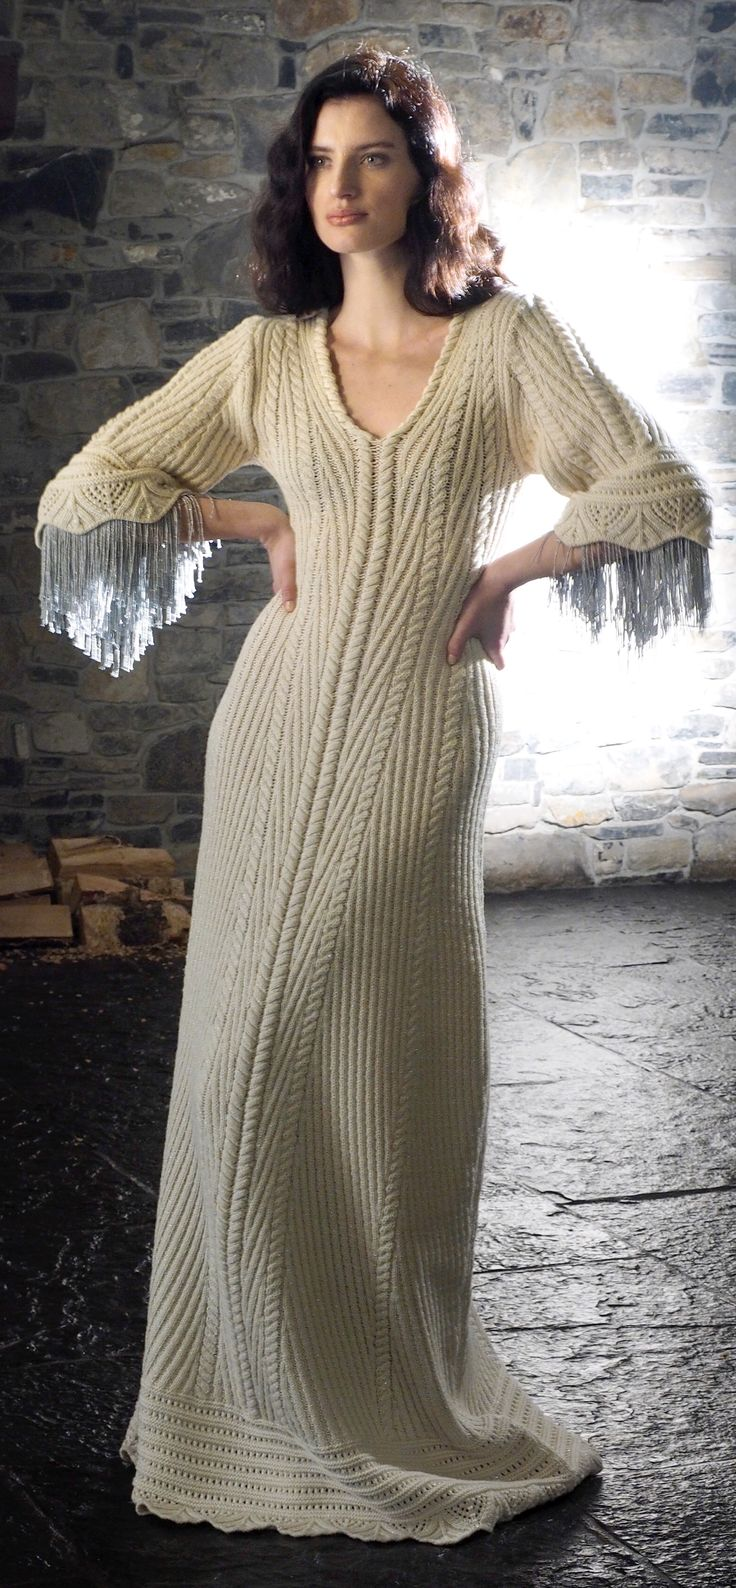 2017 Fantasy Aran Dress by Natallia Kulikouskaya for AranCrafts of Ireland, Barsbertown Castle... Photographed by Mike Bunn